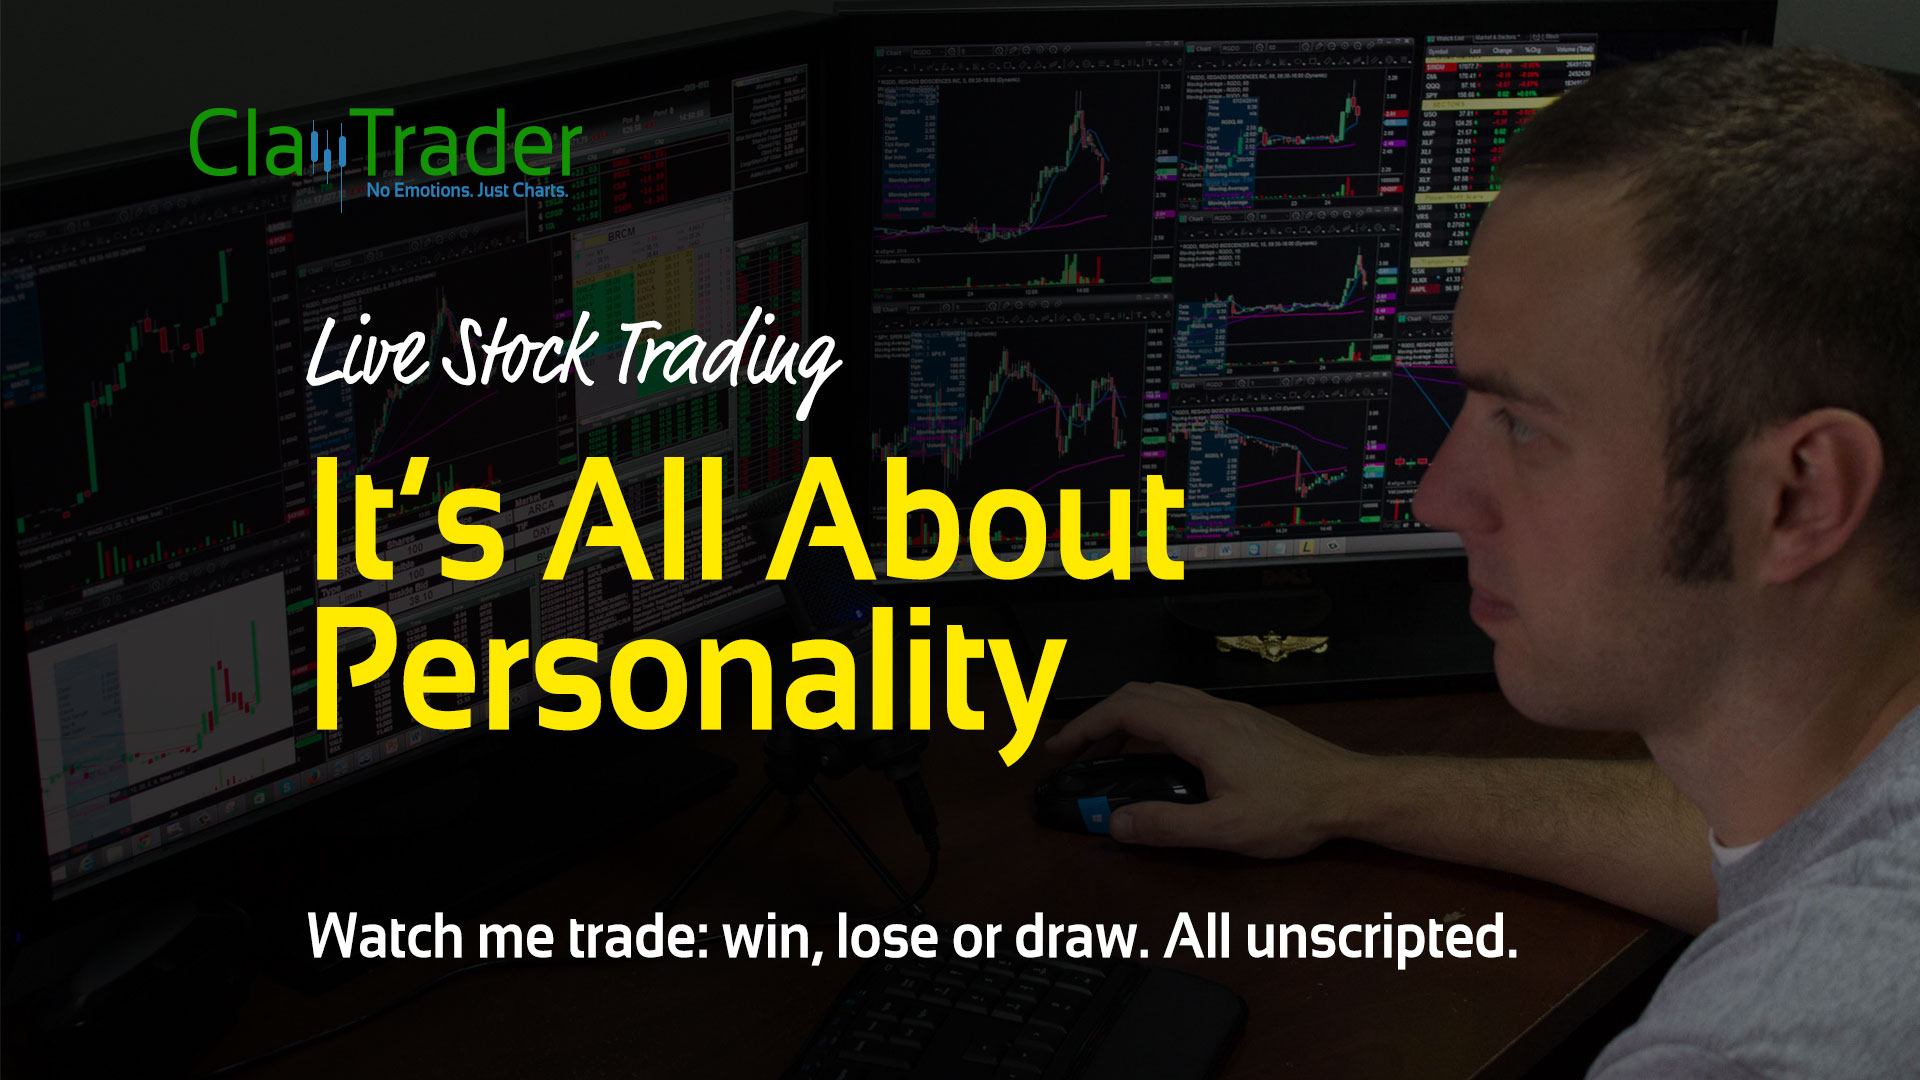 Live Stock Trading - It's All About Personality